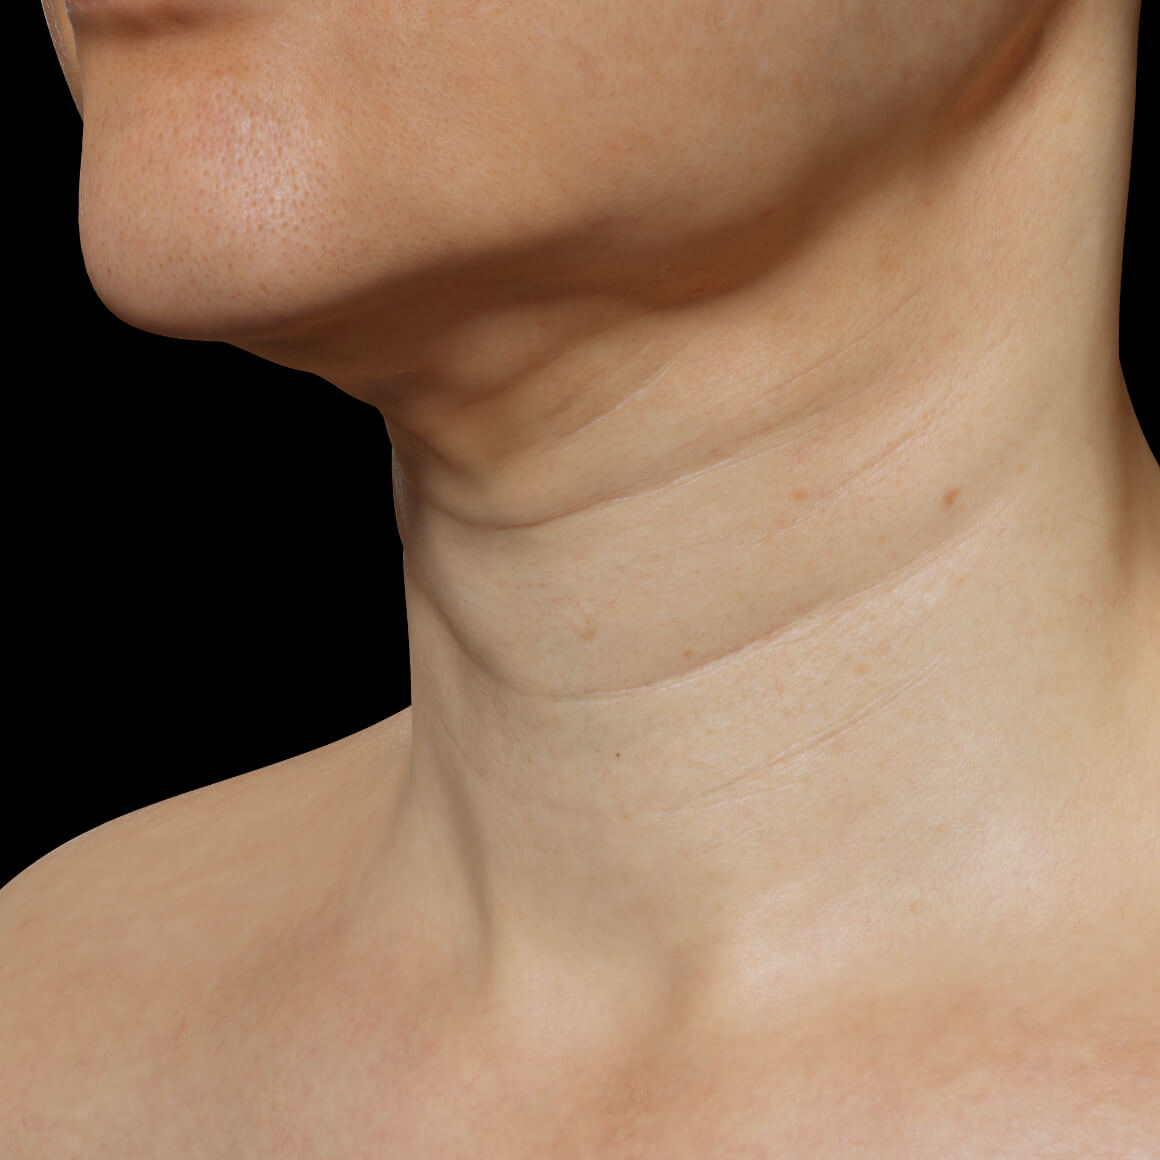 Female patient from Clinique Chloé positioned at an angle with wrinkles and sagging skin in the neck area